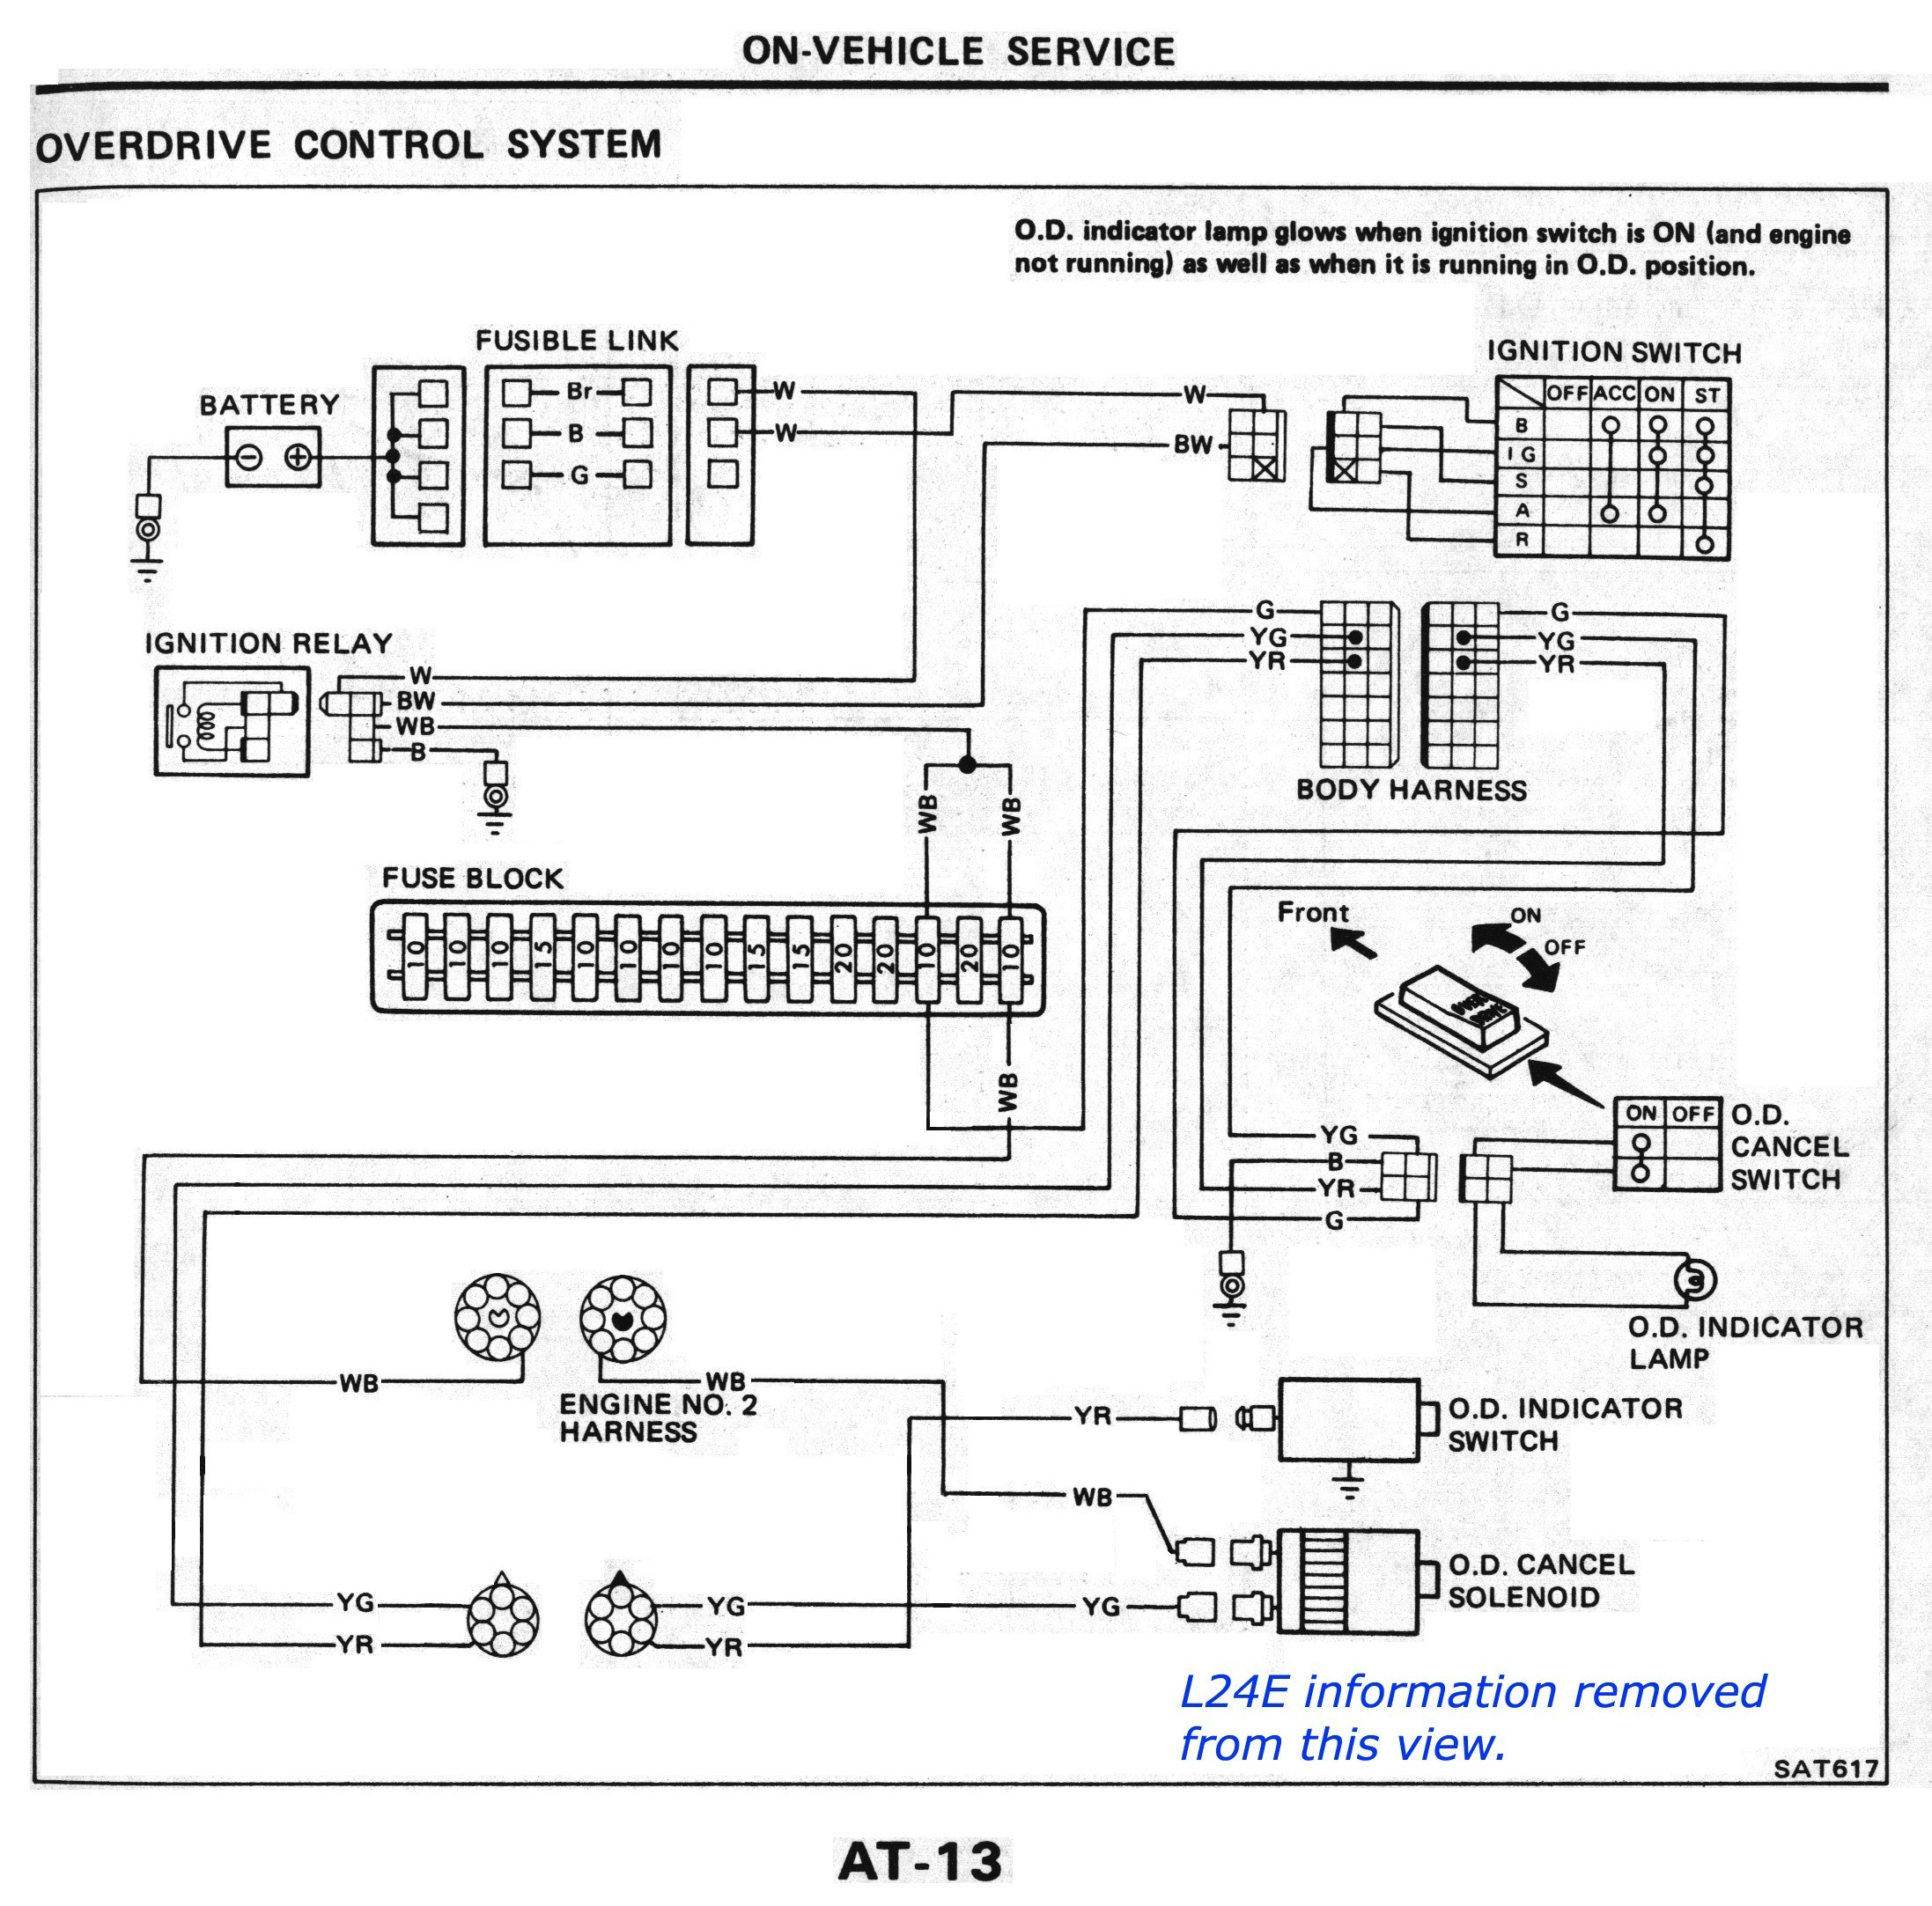 1983 Chevy Truck Wiring Diagram Car Reverse Light Wiring Diagram Of 1983 Chevy Truck Wiring Diagram